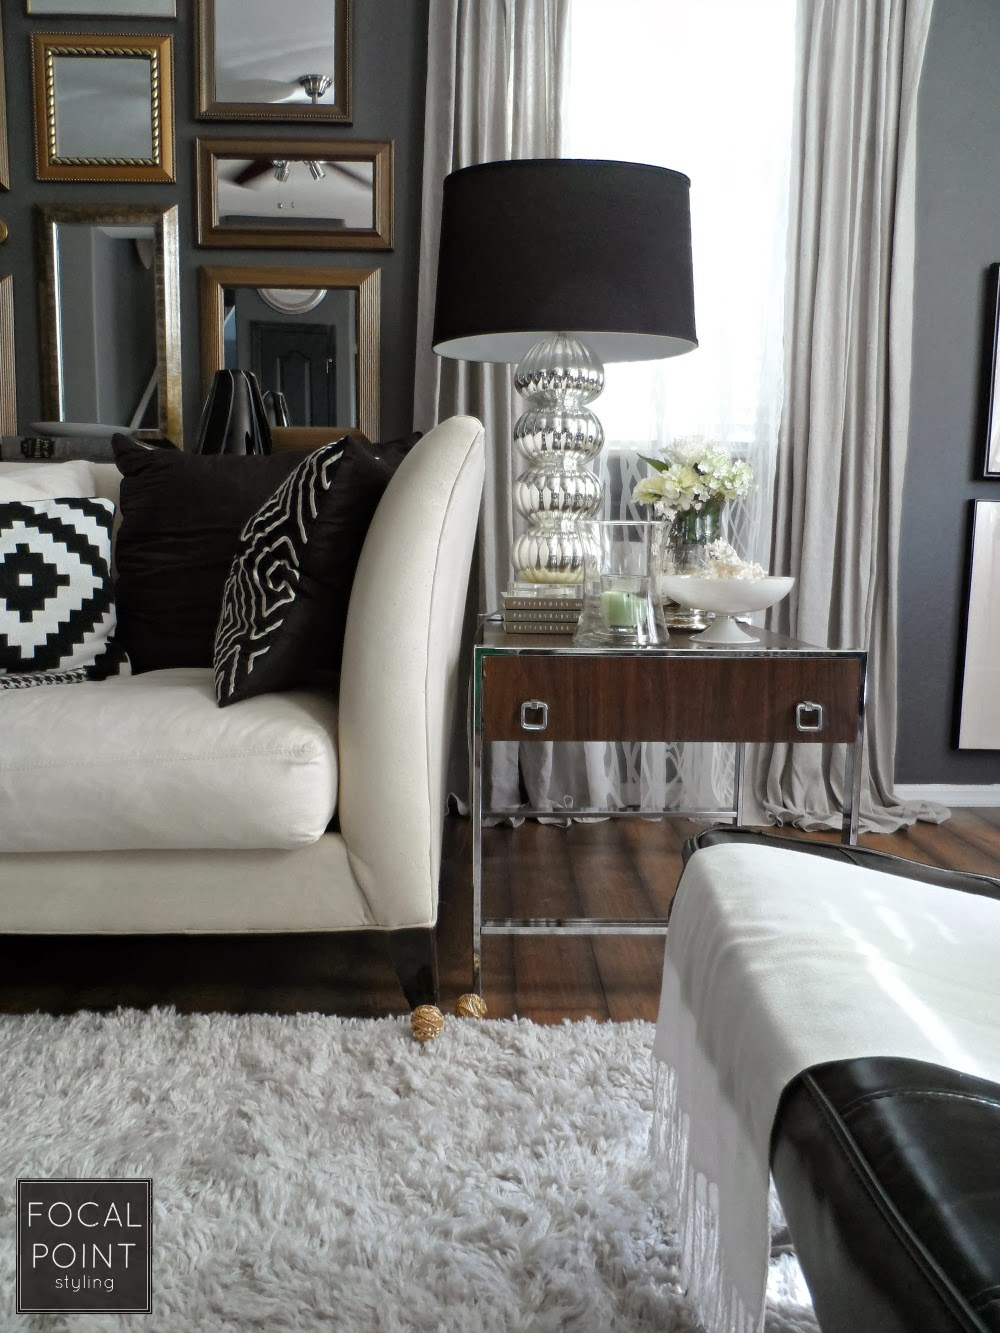 Focal Point Styling Thrifted Chic Black Amp White Living